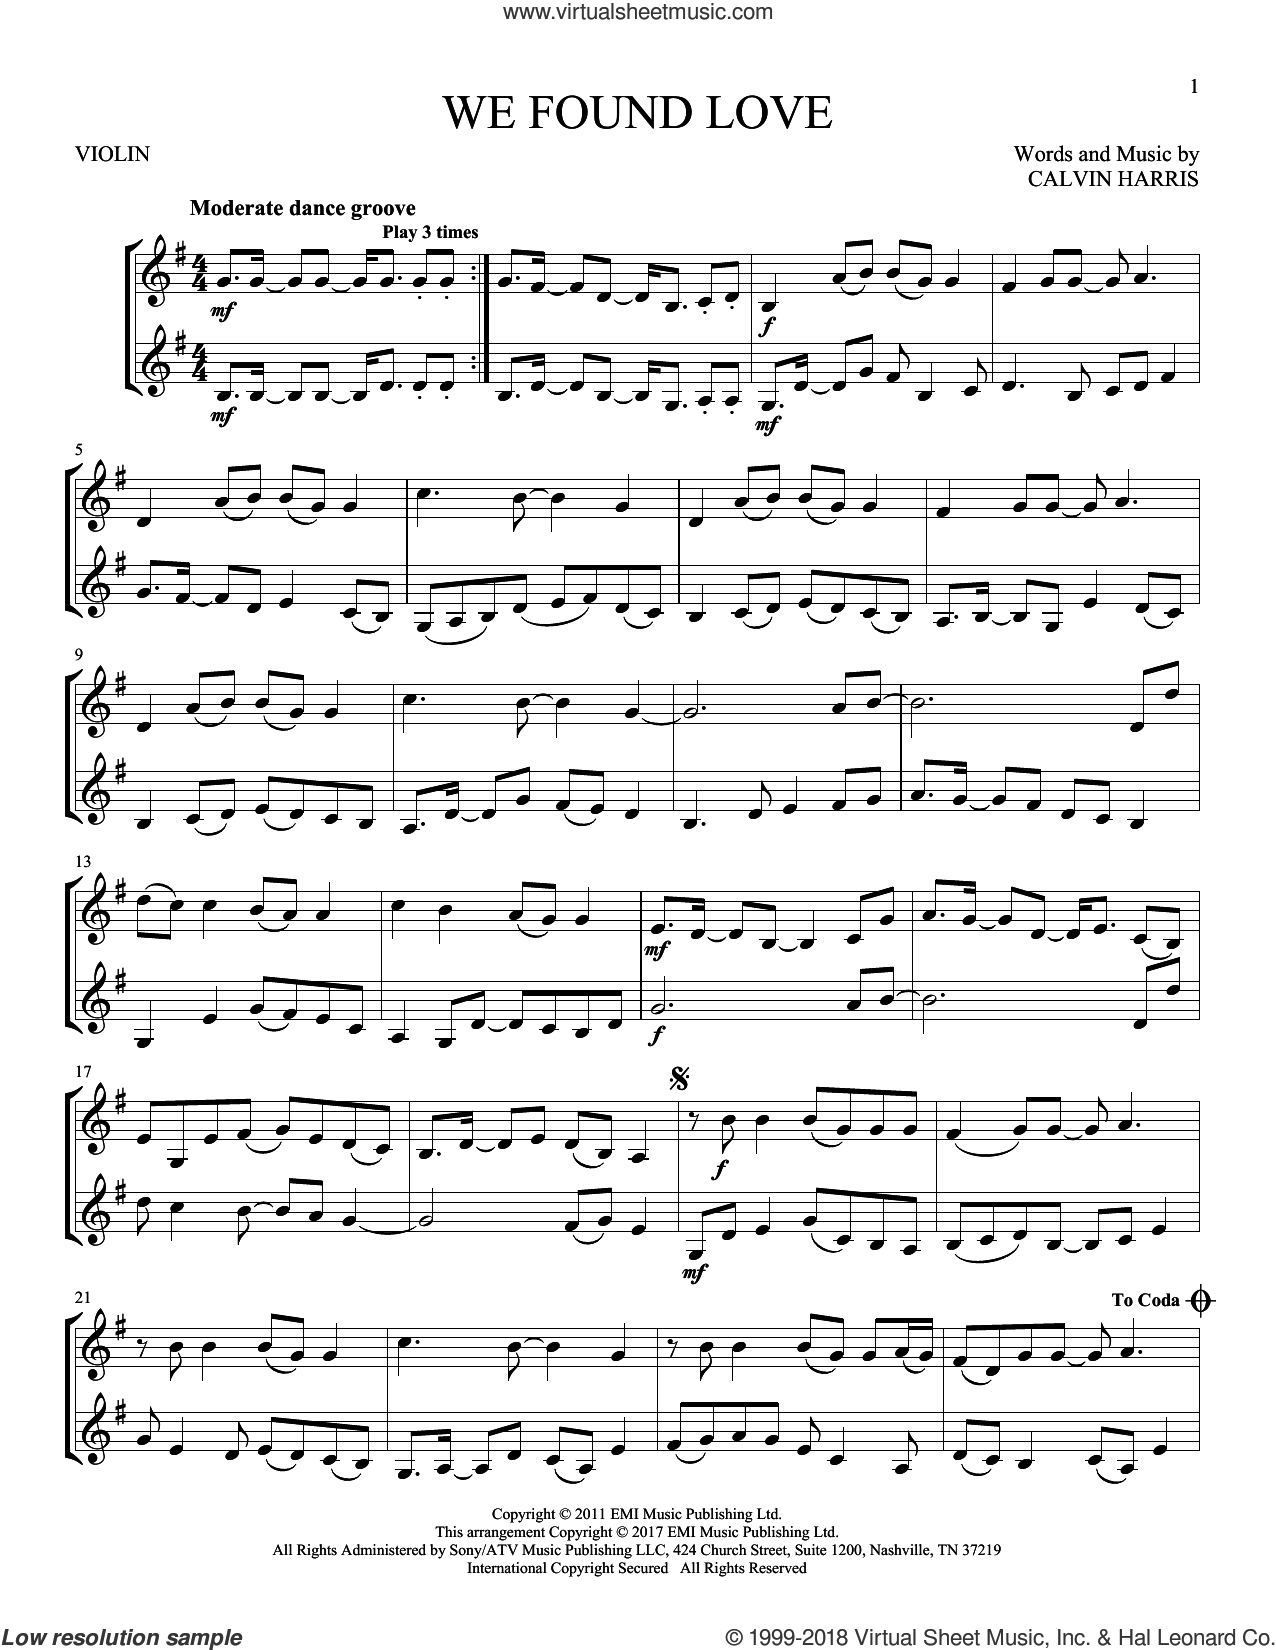 We Found Love sheet music for two violins (duets, violin duets) by Rihanna featuring Calvin Harris and Calvin Harris, wedding score, intermediate skill level